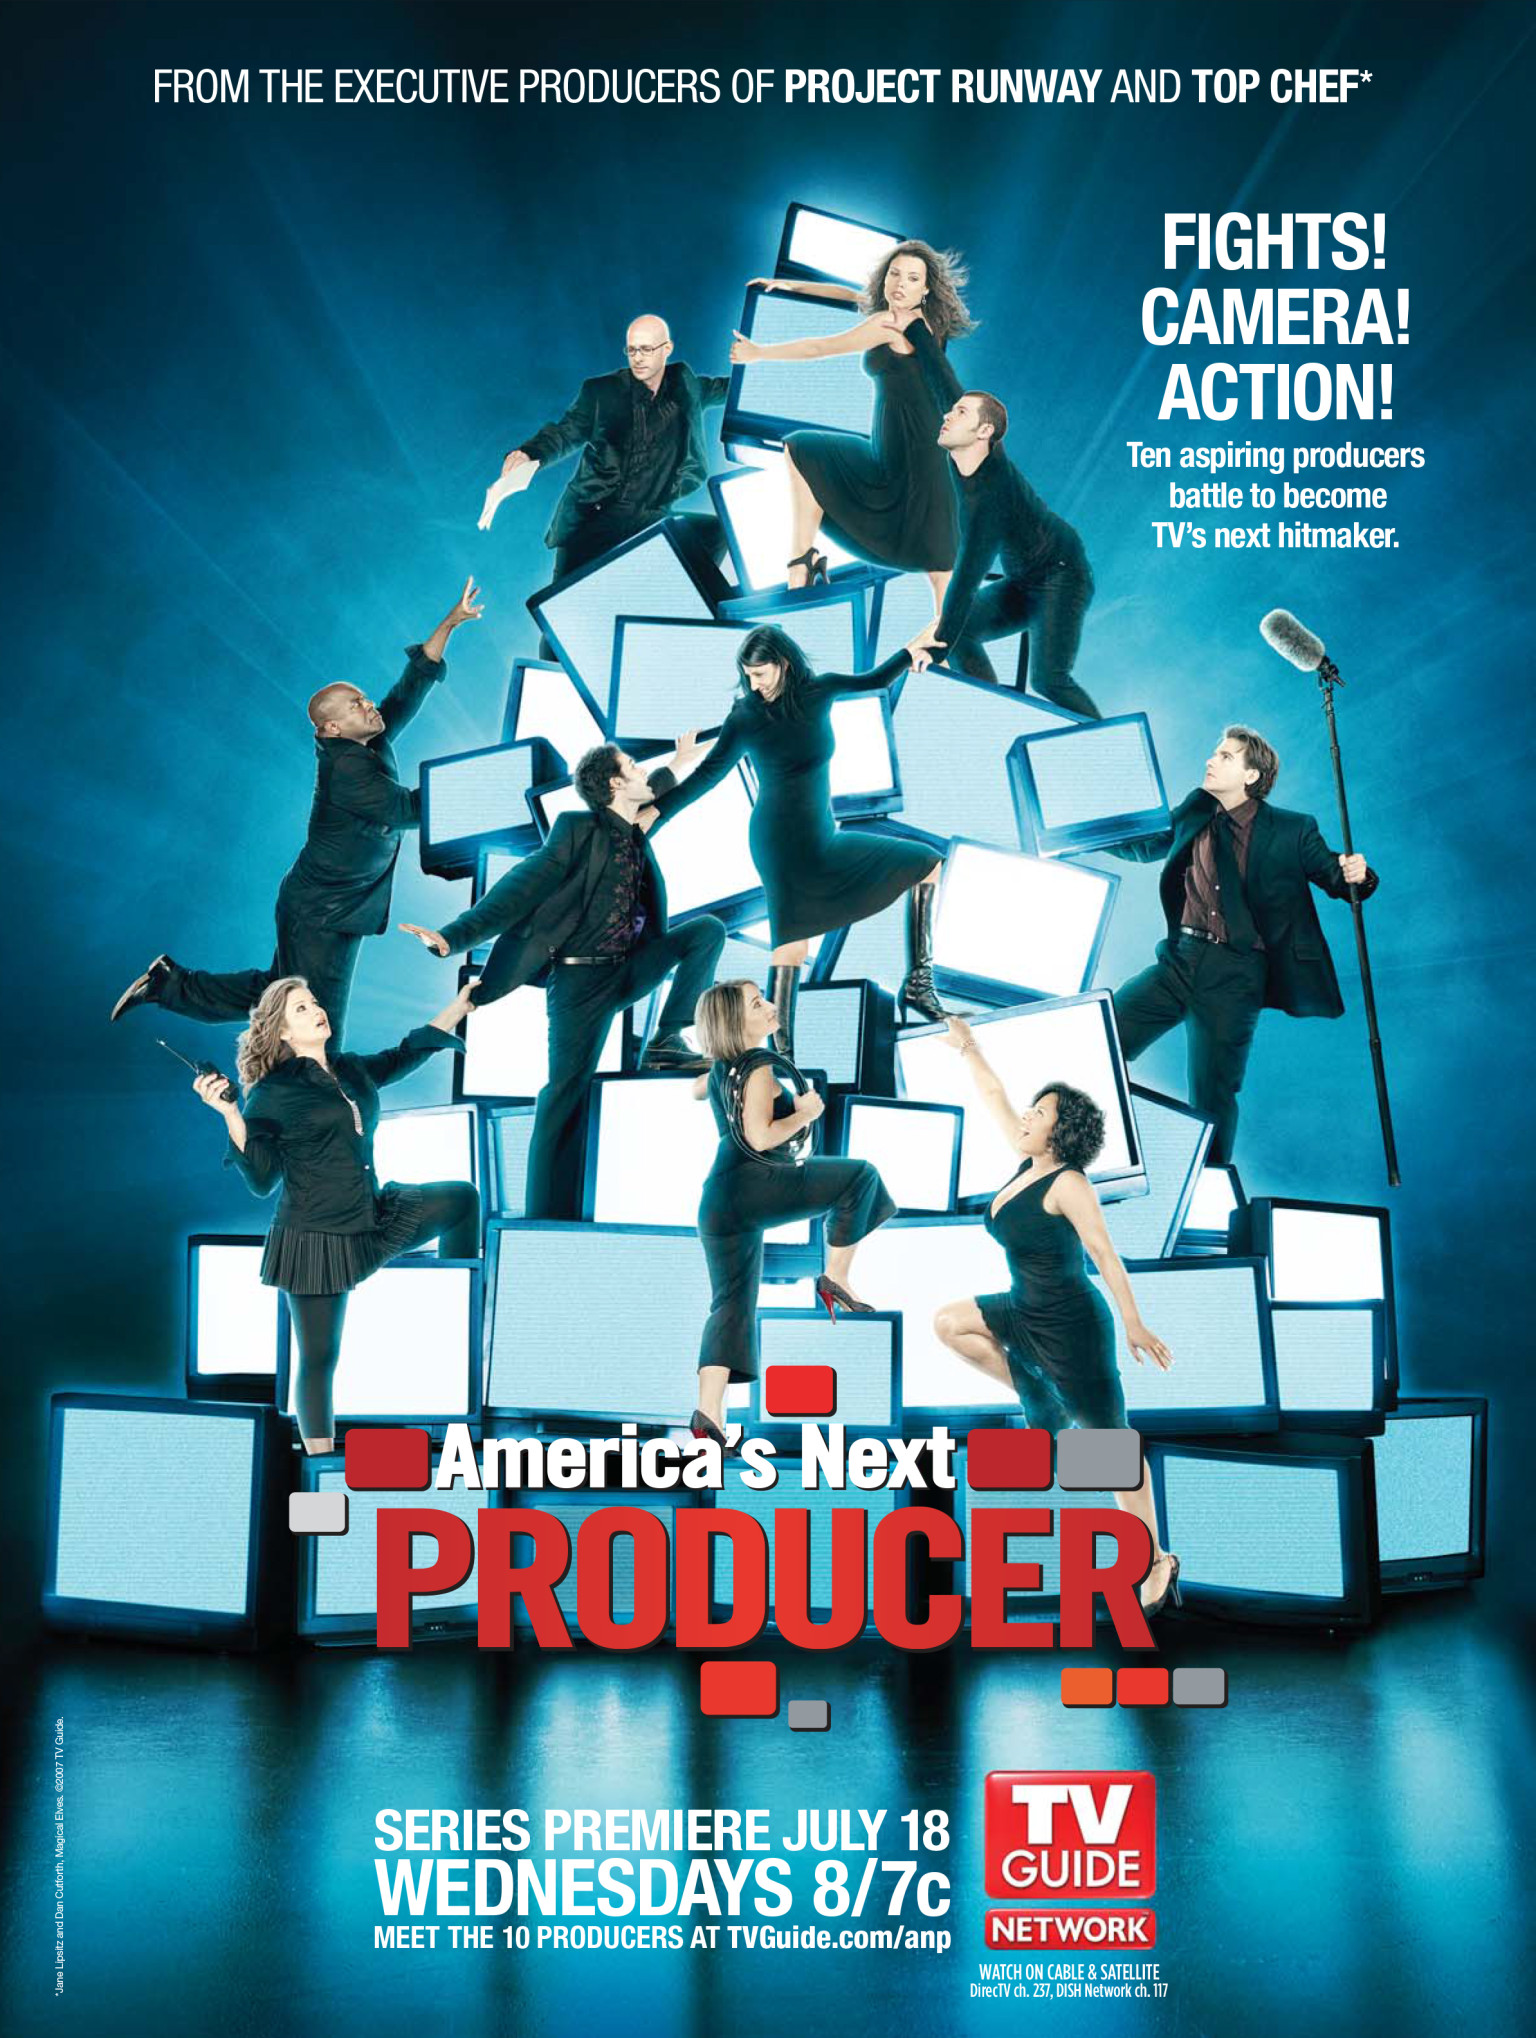 America's Next Producers